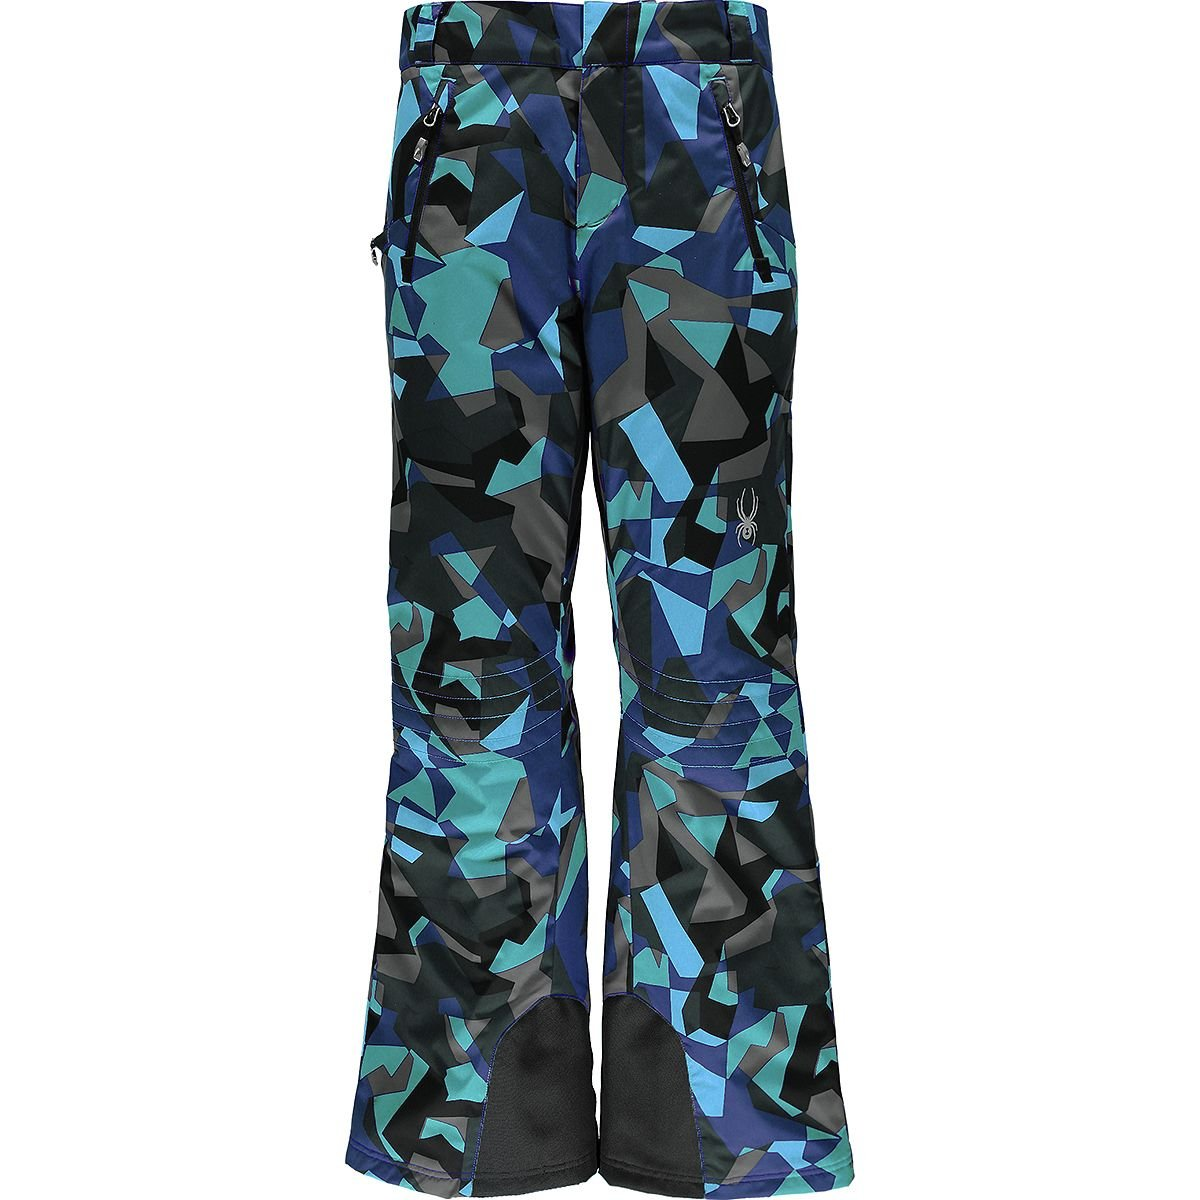 Baltic Camo Print Spyder Women's Winner Athletic Fit Ski Pant